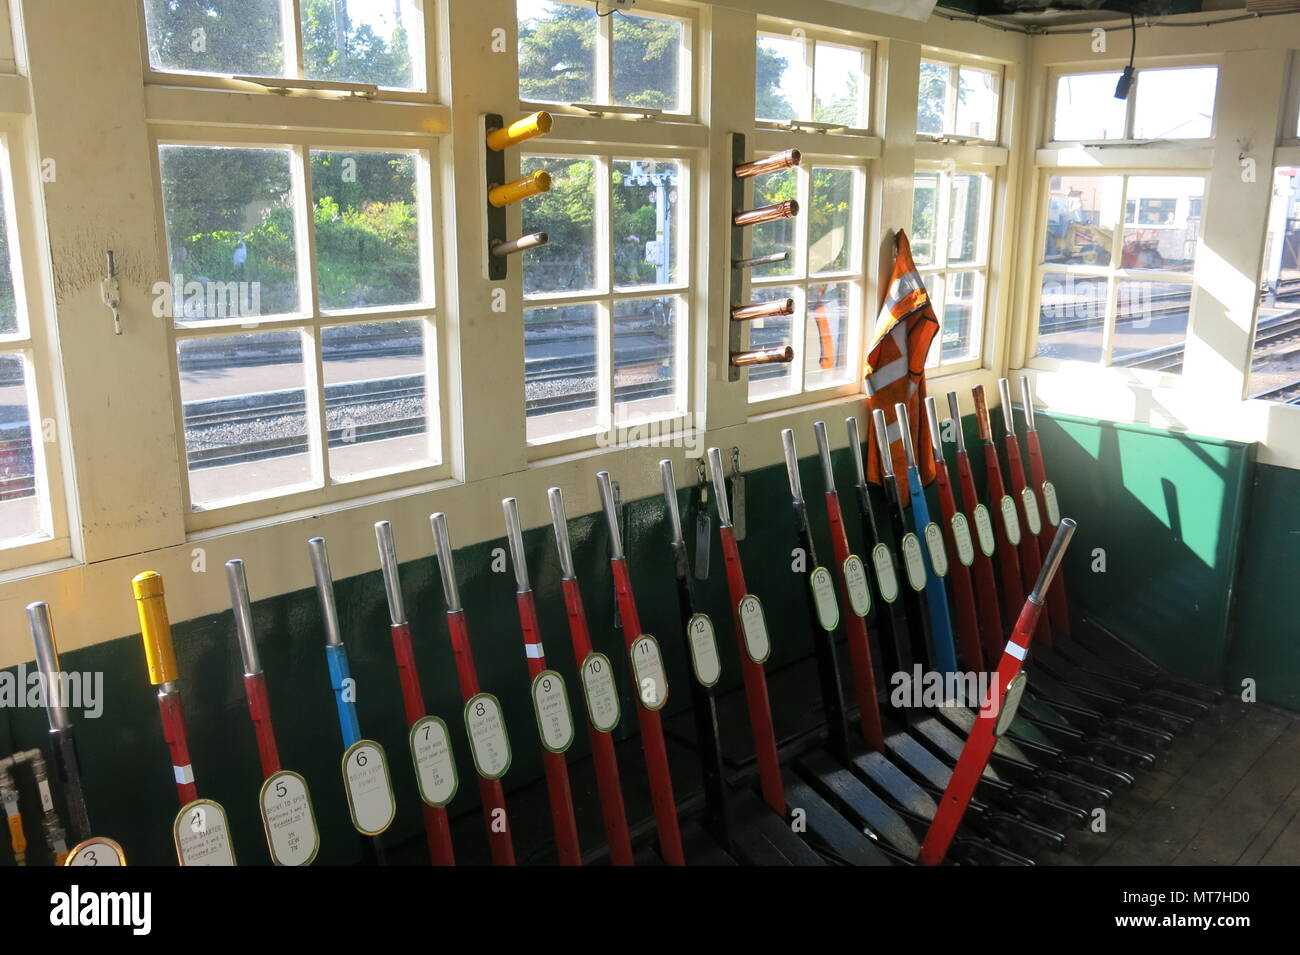 Lots of levers inside the signal box at New Romney station on the Romney, Hythe & Dymchurch steam railway, Kent - Stock Image